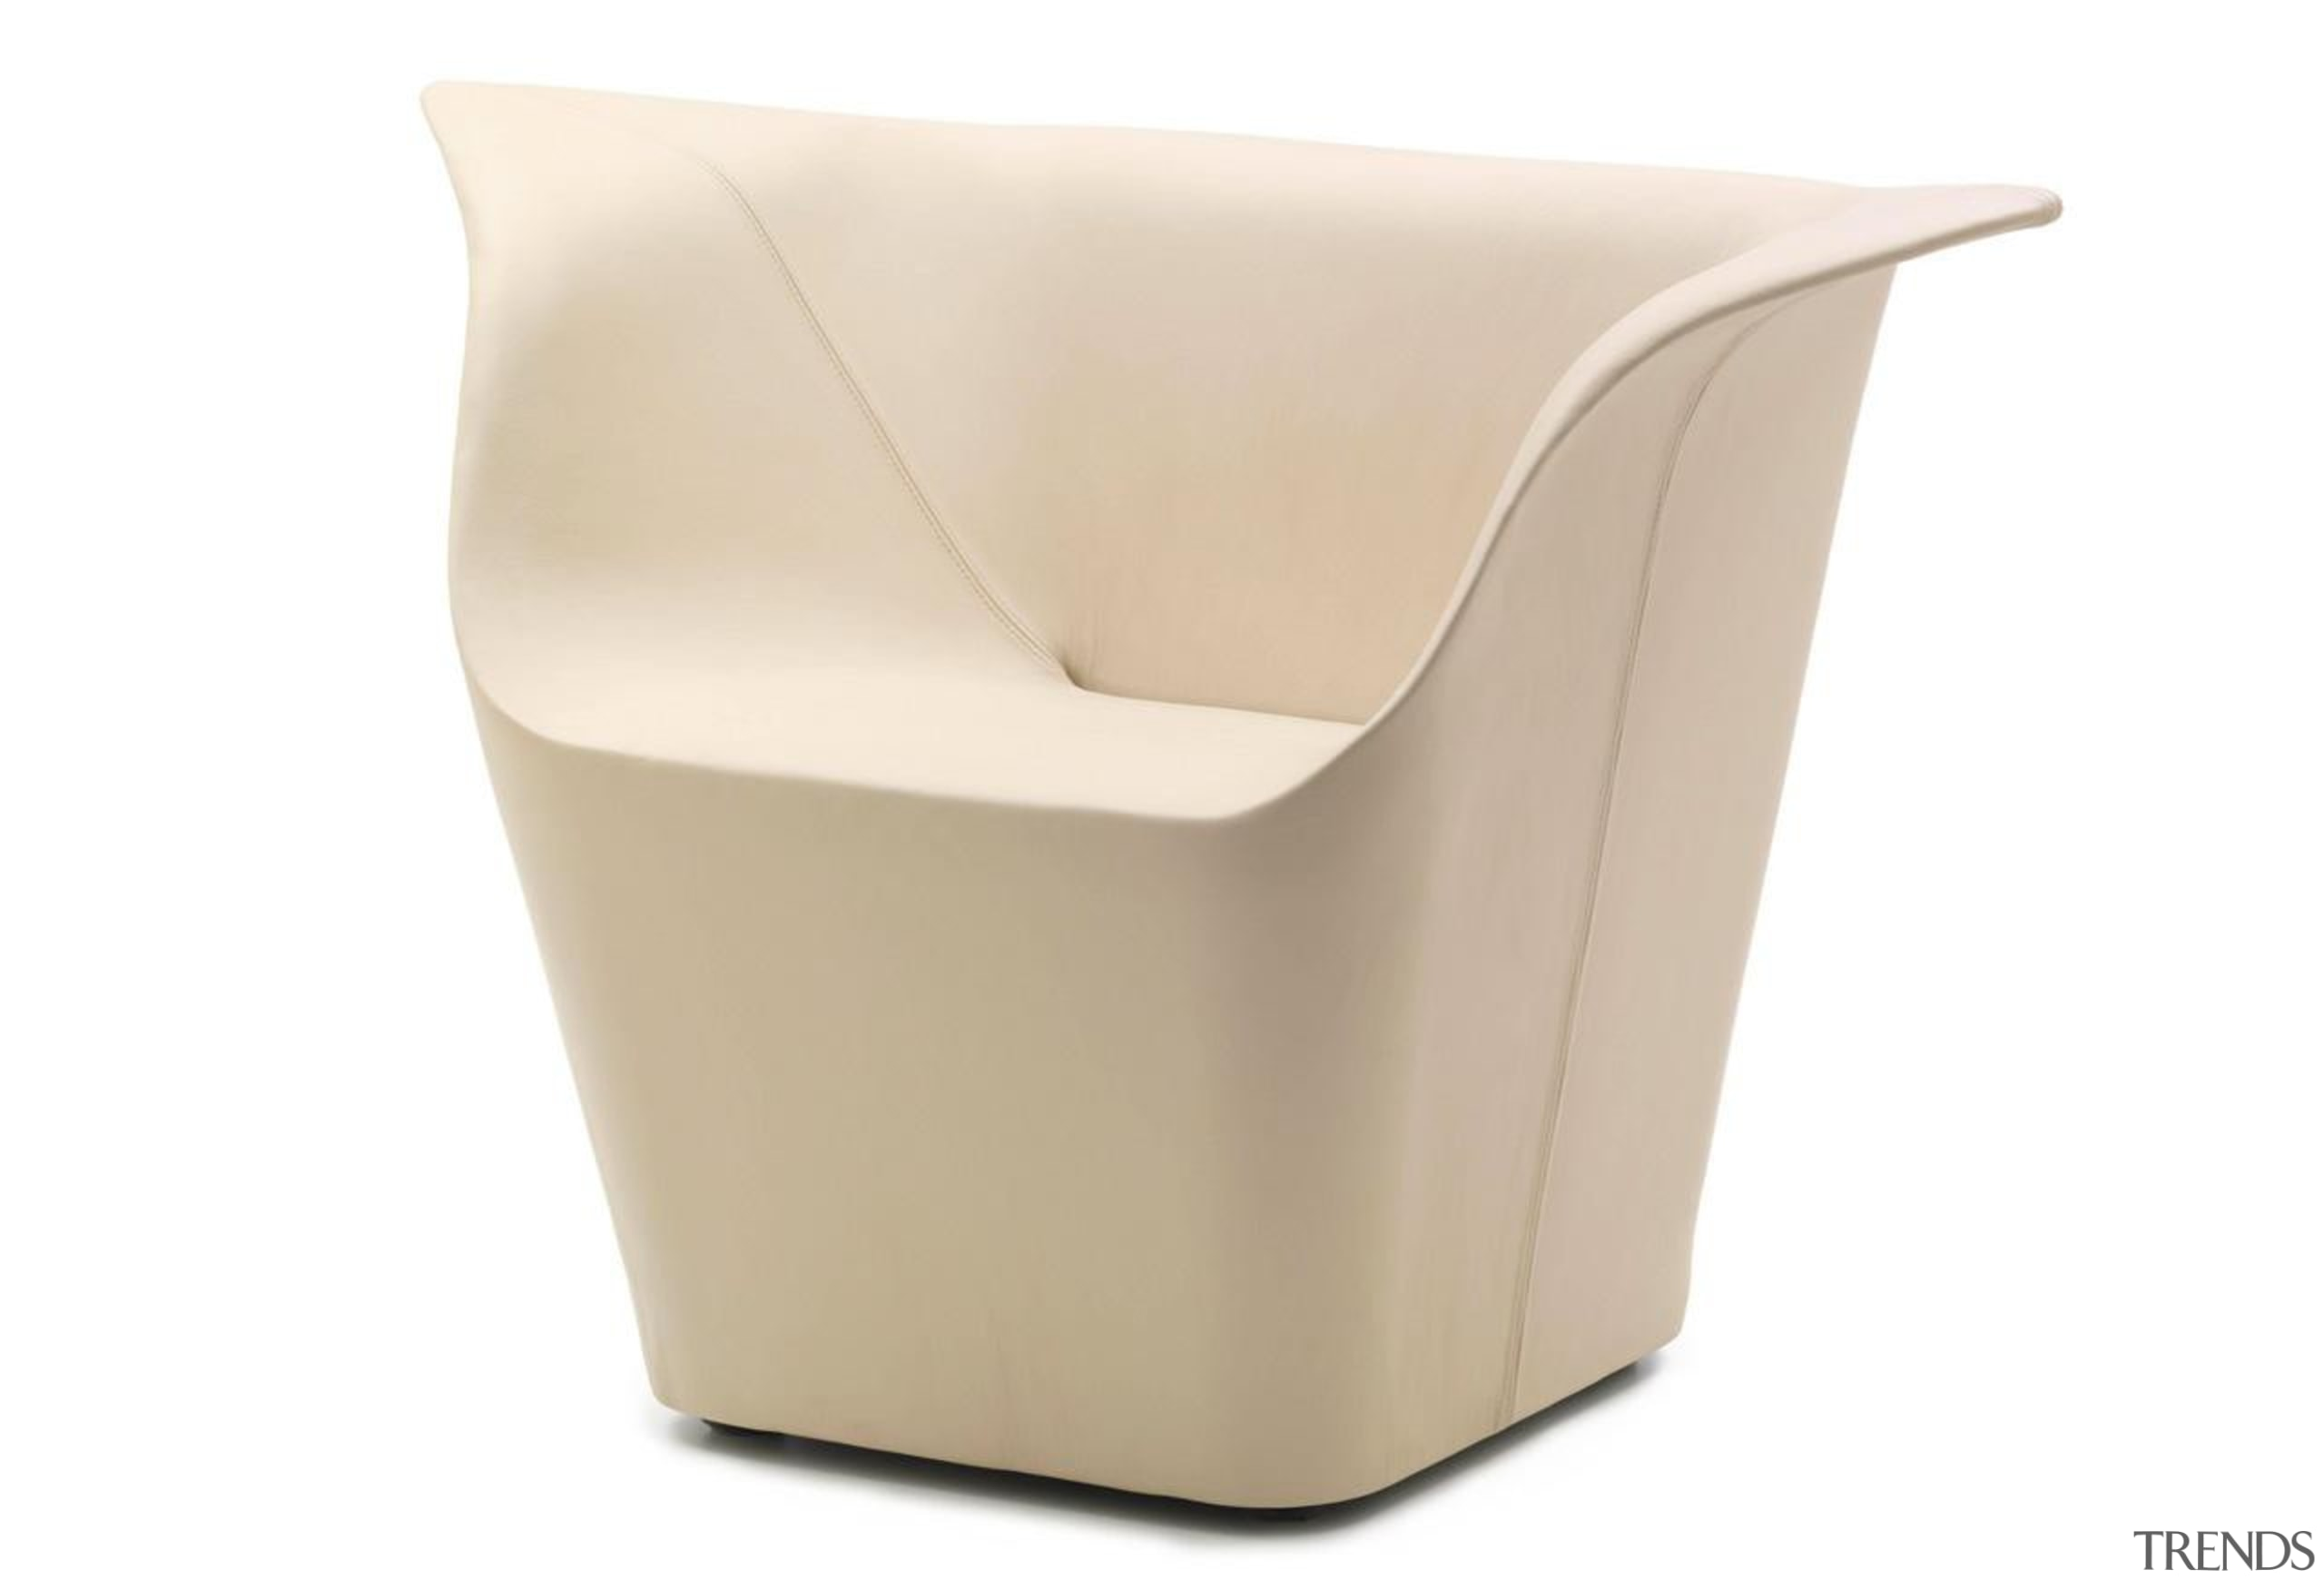 Garment armchair by Benjamin Hubert for Cappellini.Garment is angle, chair, furniture, product design, white